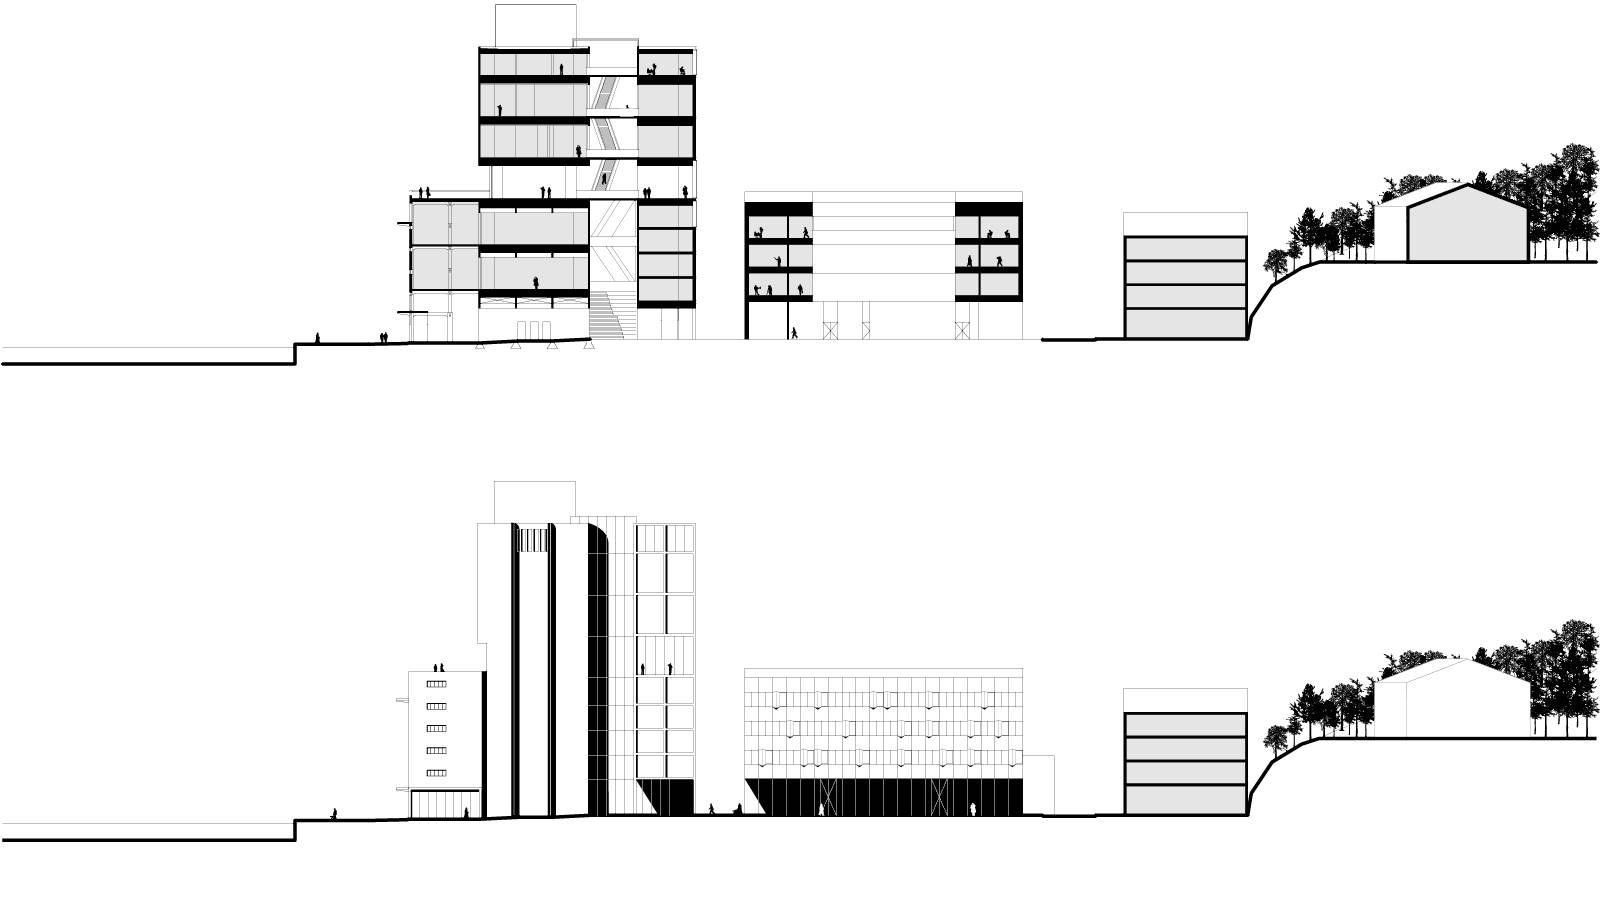 SECTION ACROSS SITE - ART SILO AND ART SCHOOL - Kunstsilo - SPOL Architects